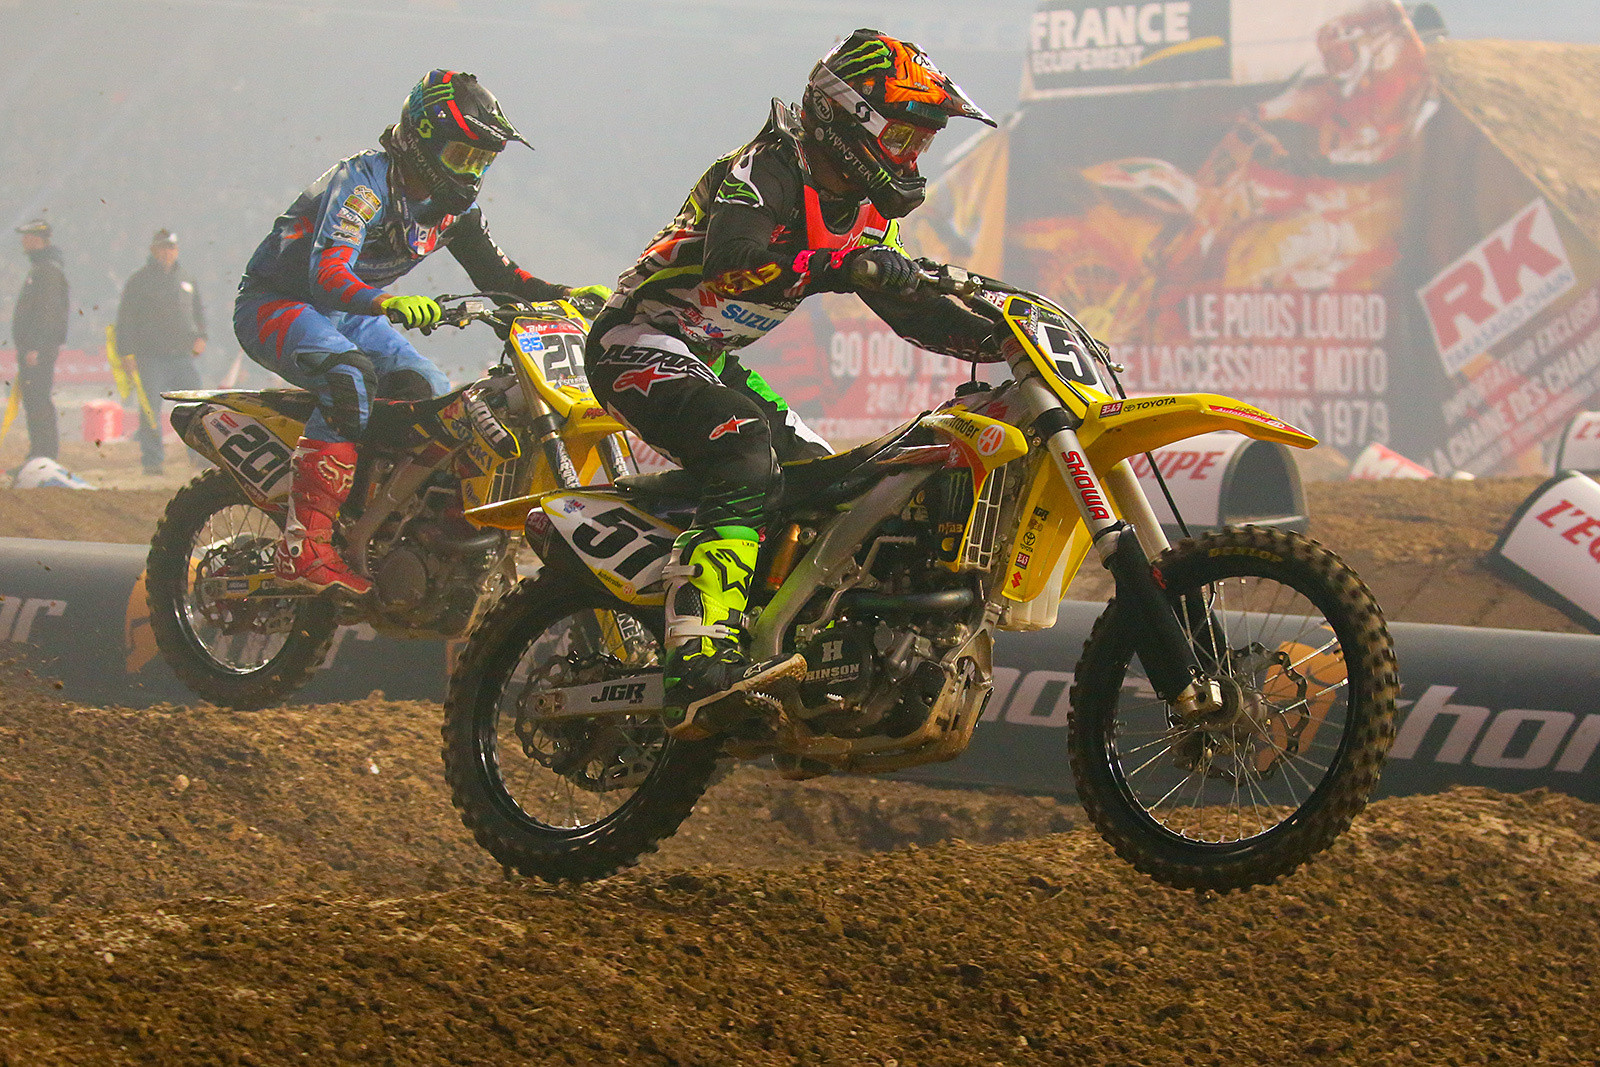 Justin Barcia and Cedric Soubeyras - Photo Gallery: Paris-Lille Supercross, Day 2 - Motocross Pictures - Vital MX